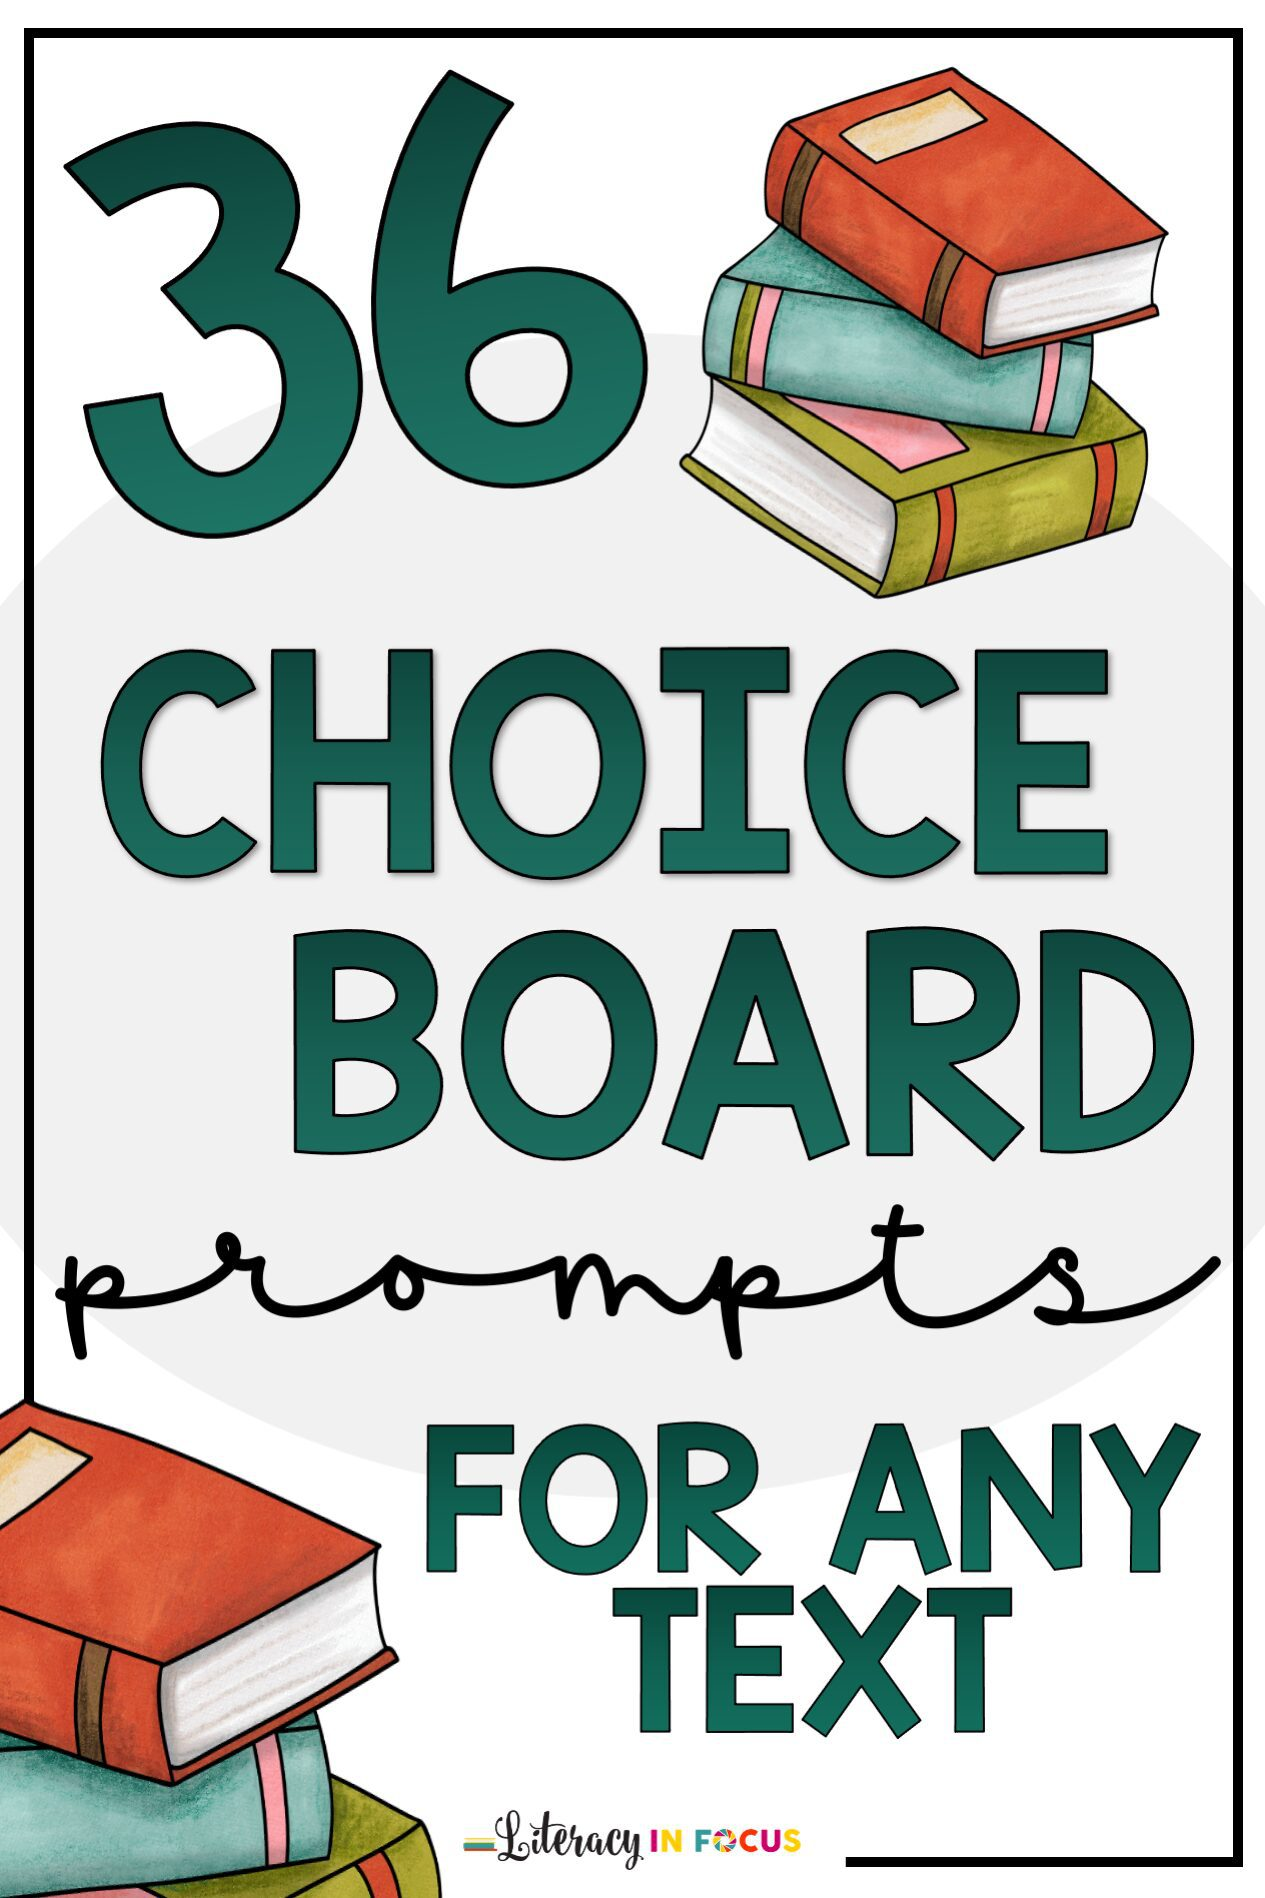 36 Choice Board Prompts for Any Texts